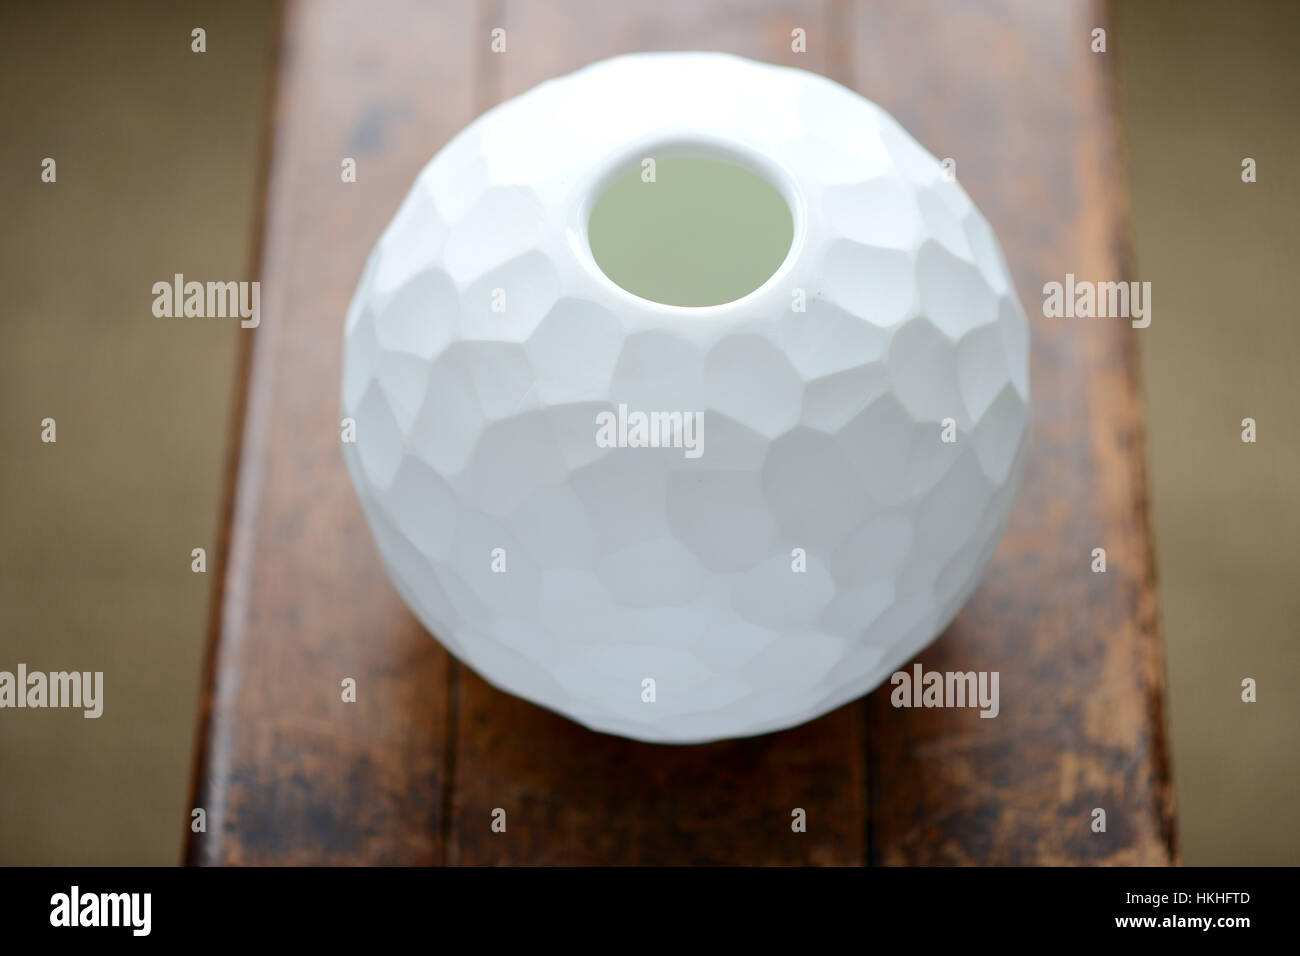 Round cut glass vase with decorative pattern - Stock Image